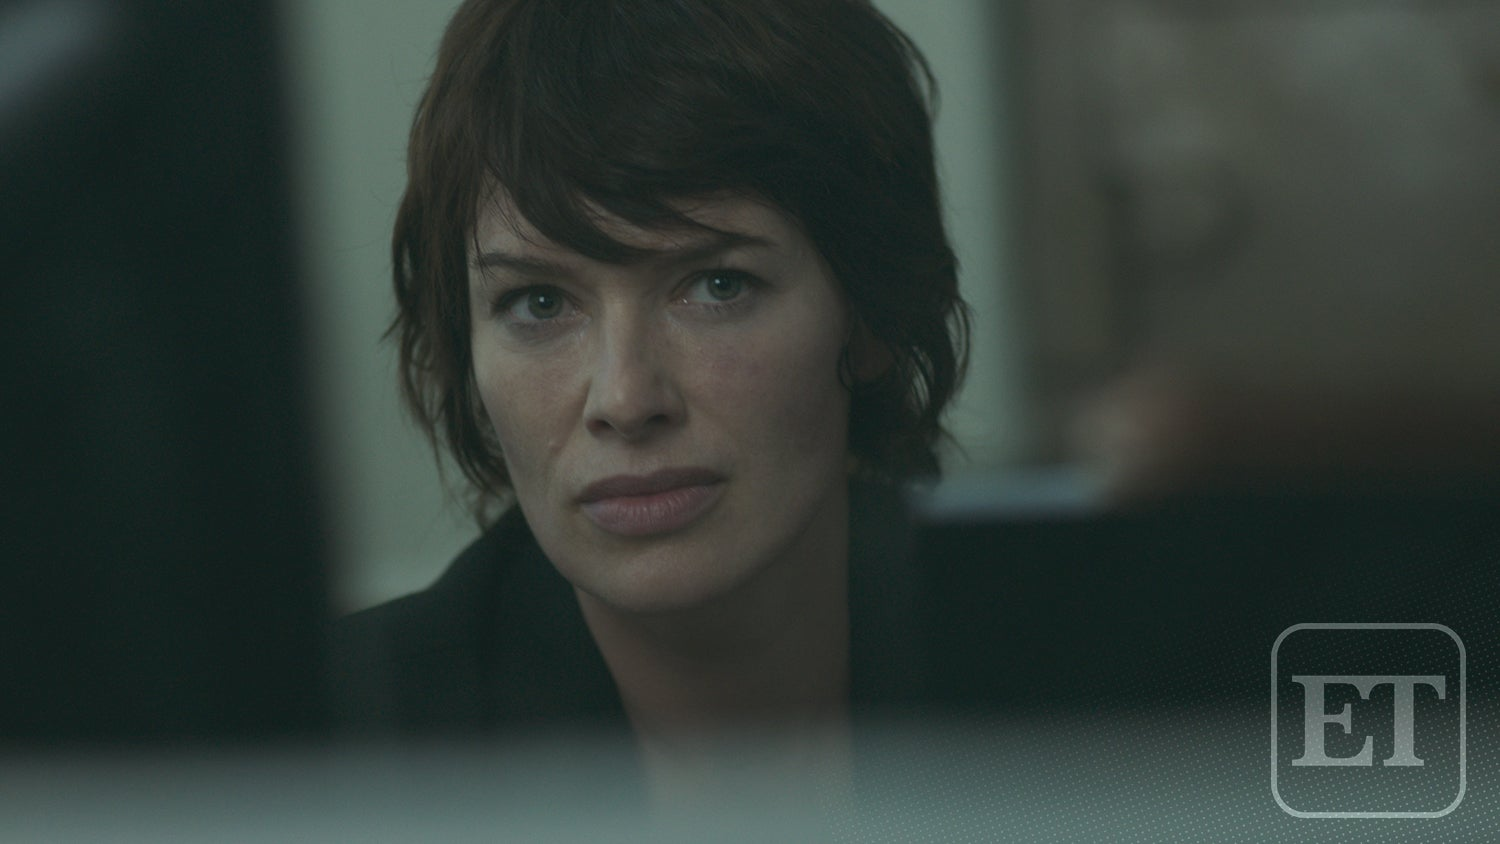 Lena Headey in Thumper